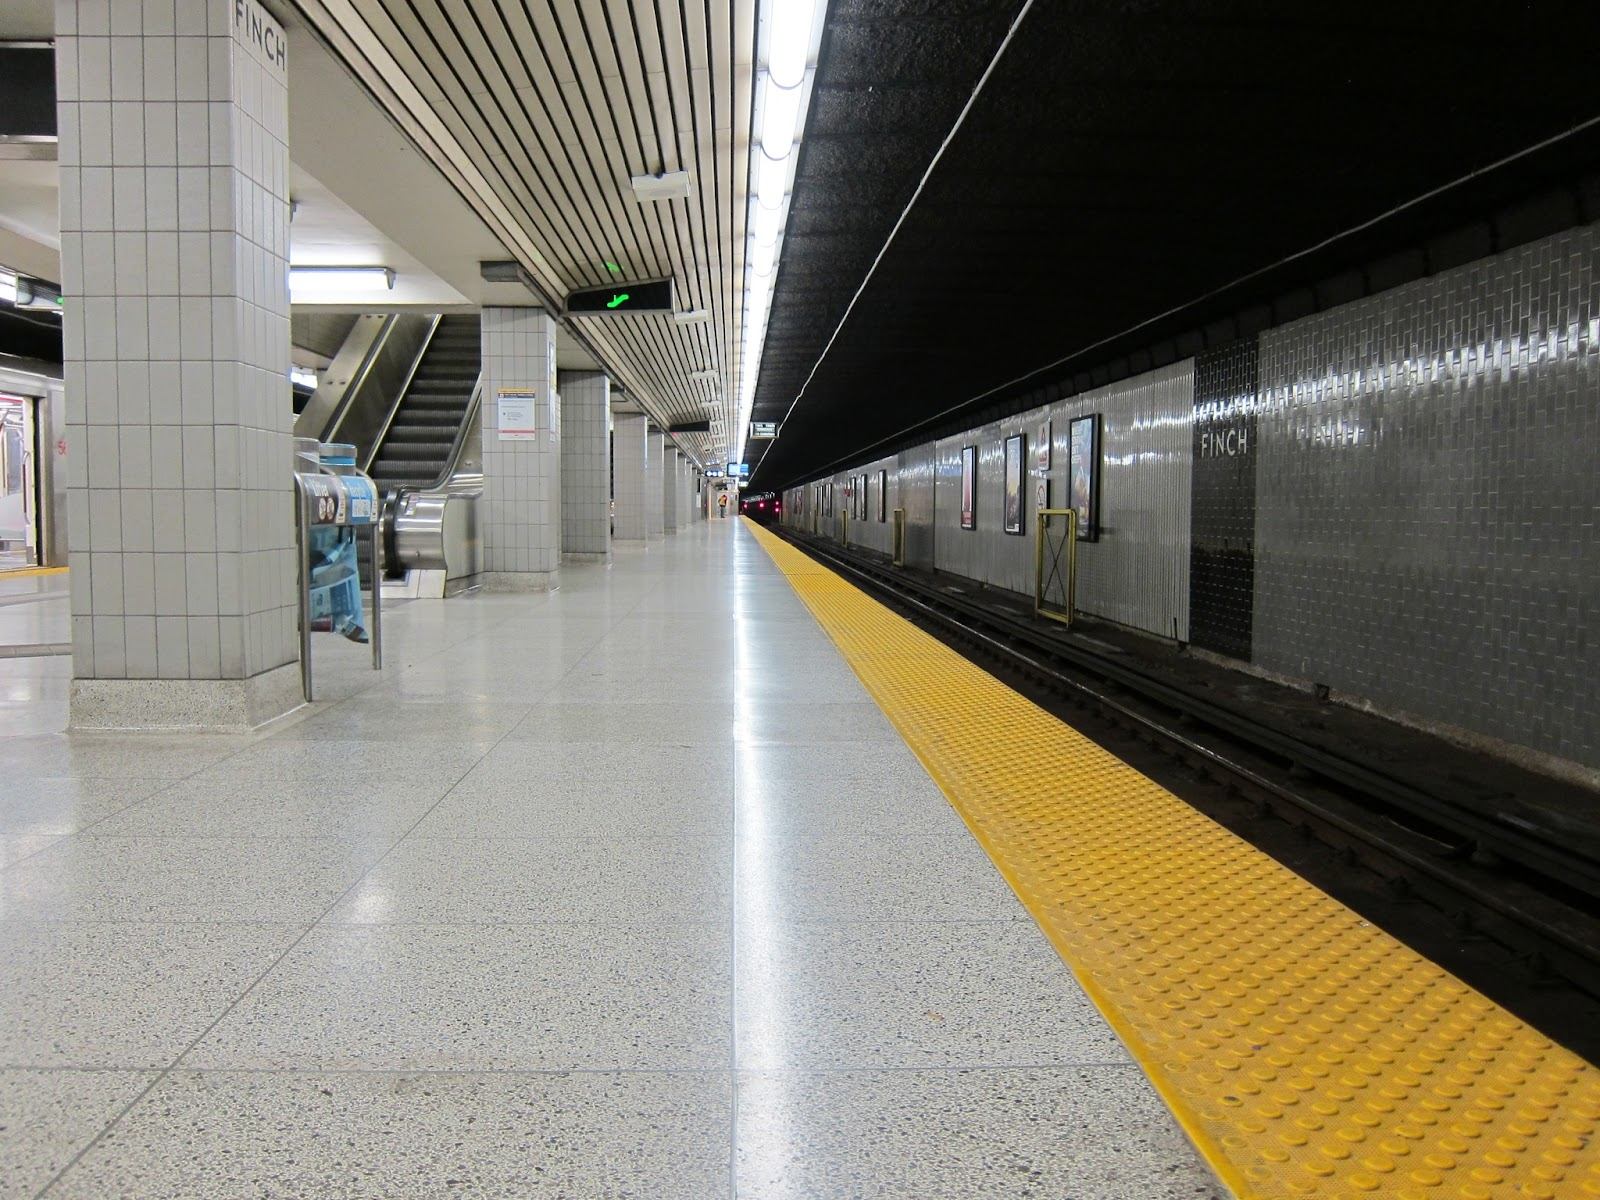 Finch station subway platform